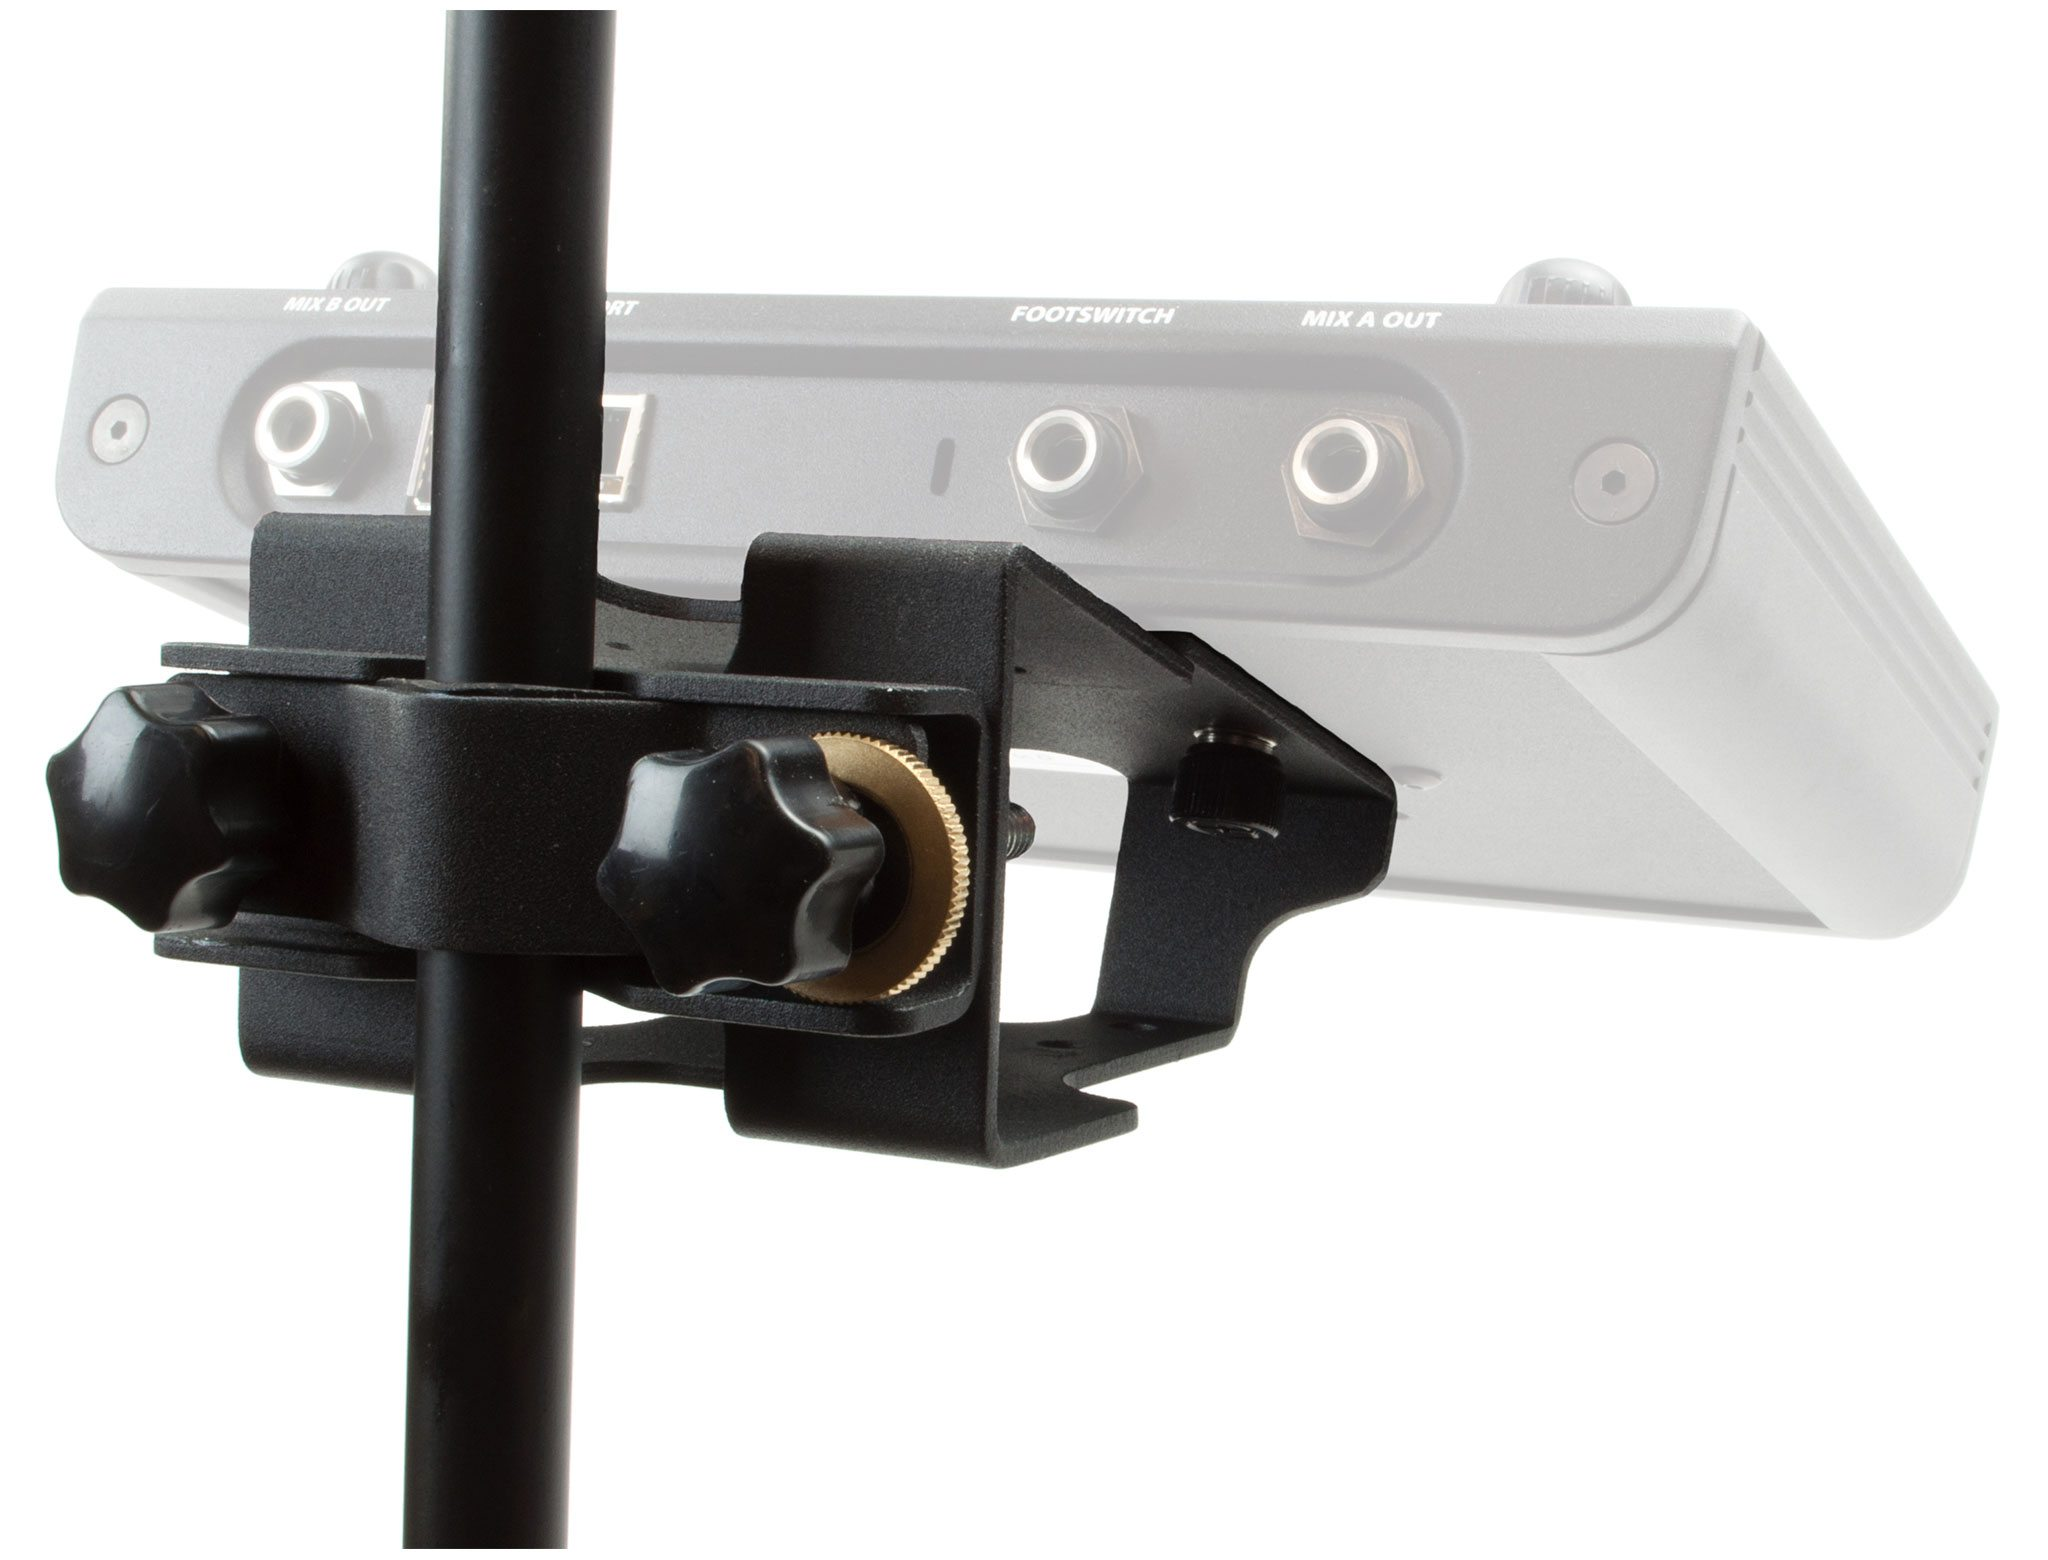 Livemix MT-1 Dual Position Mic Stand Mount For Personal Mixers